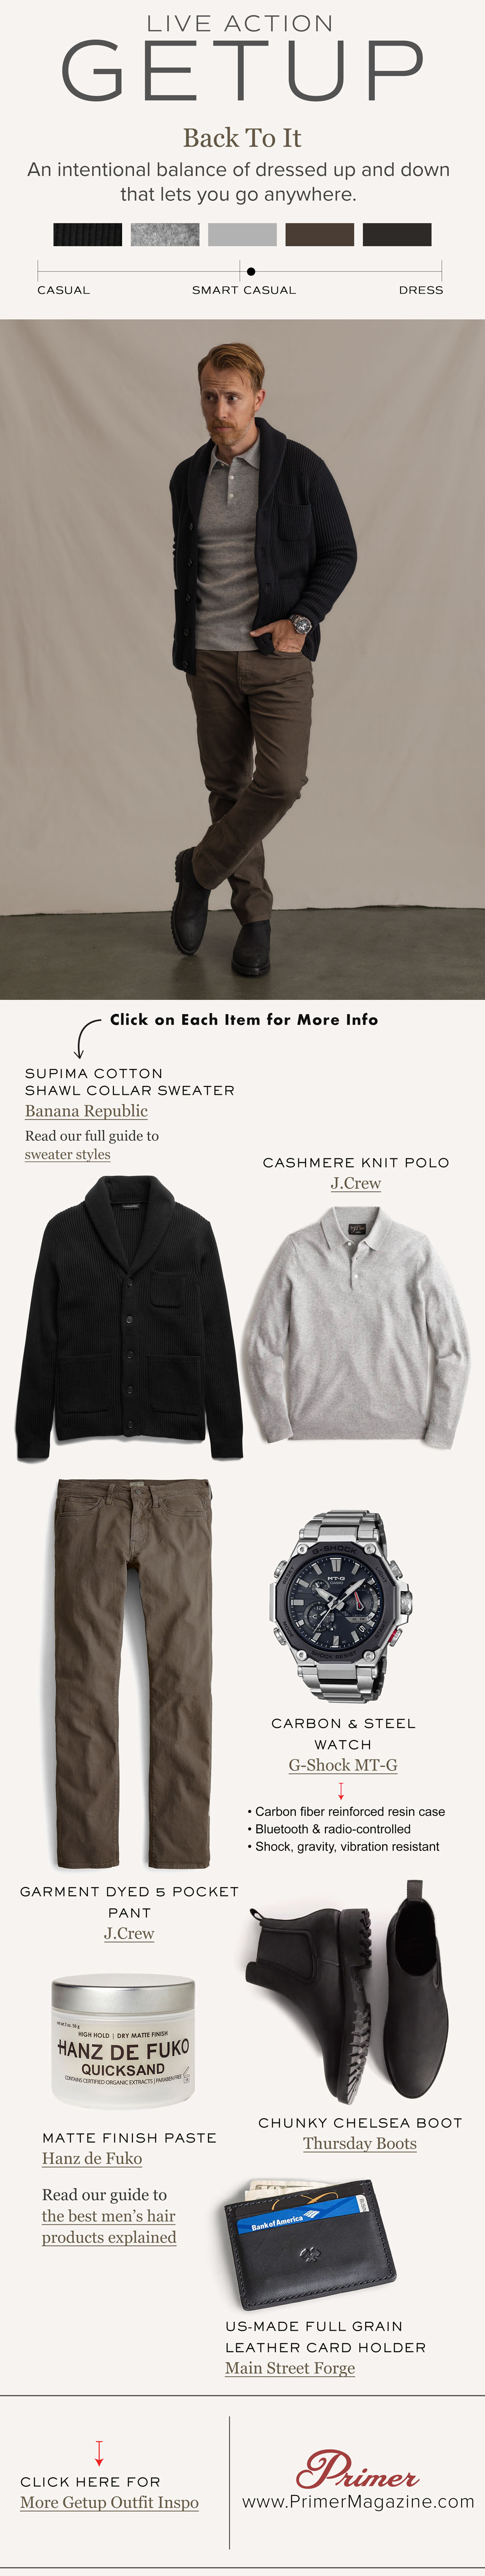 Live Action Getup: Back to It - Men's Fall Outfit Inspiration with shawl collar cardigan knit polo and brown pants